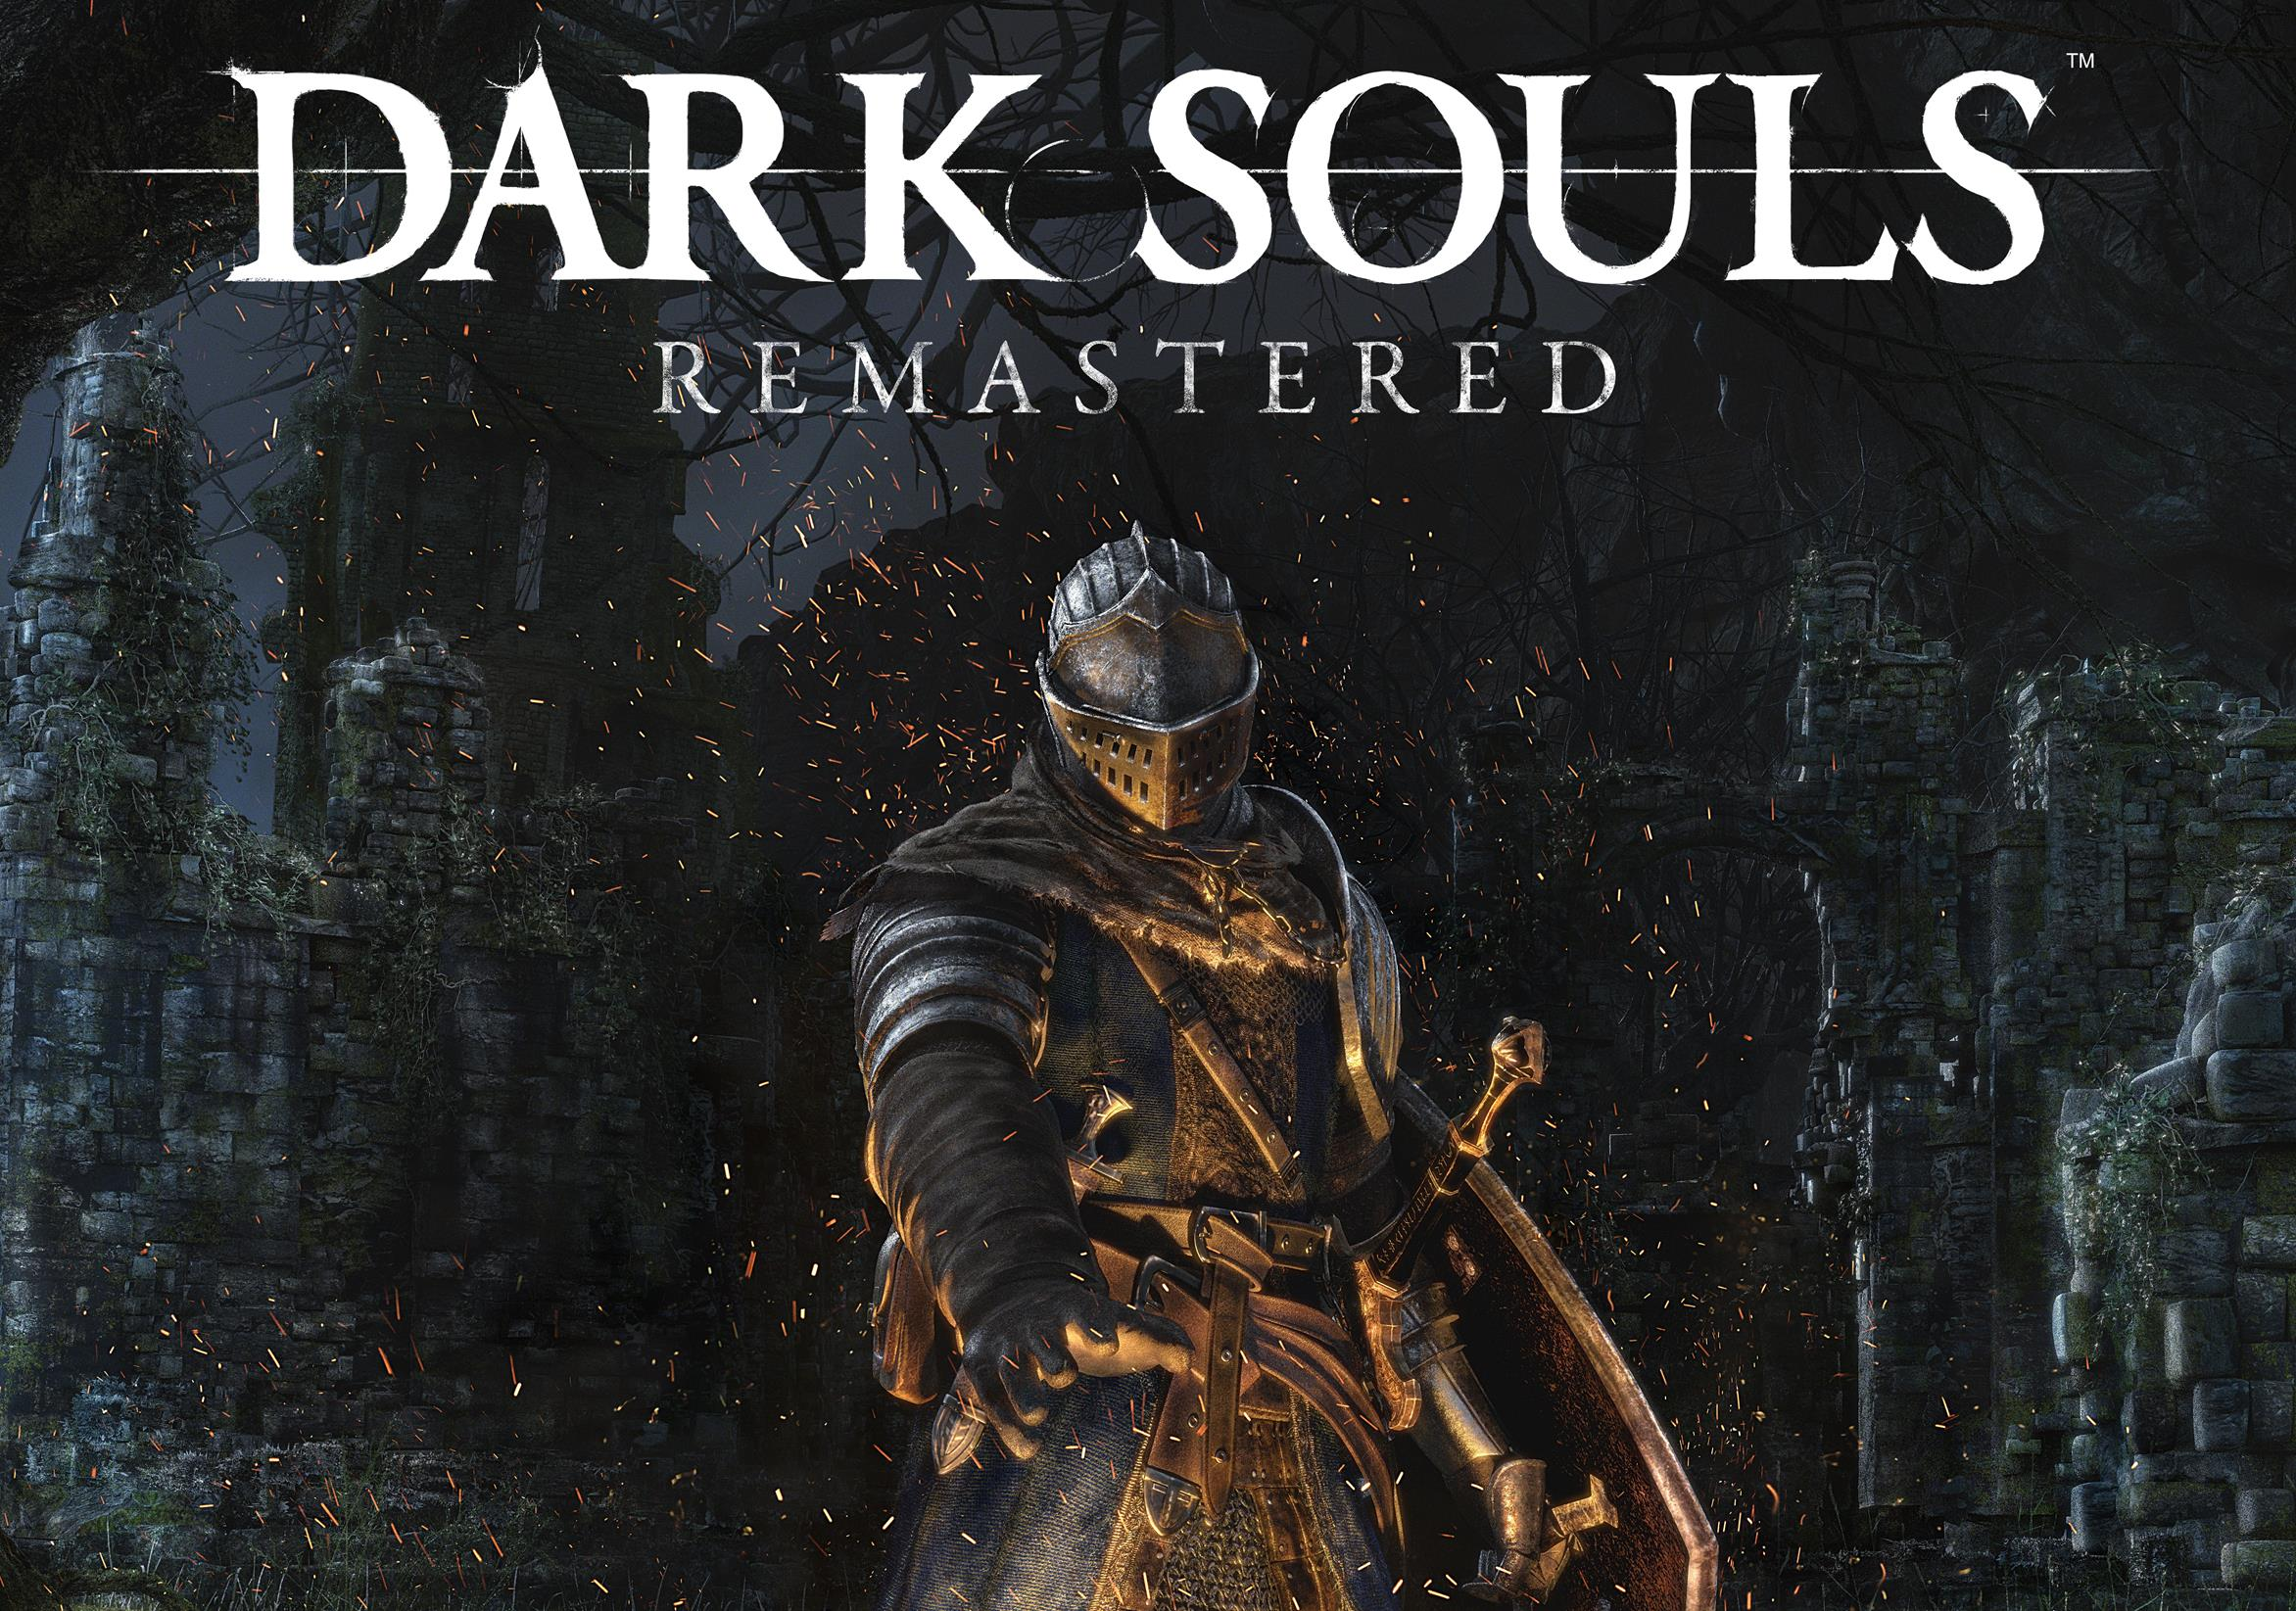 Dark Souls Remastered Nintendo Switch Release Date: Dark Souls Remastered Announced For Nintendo Switch